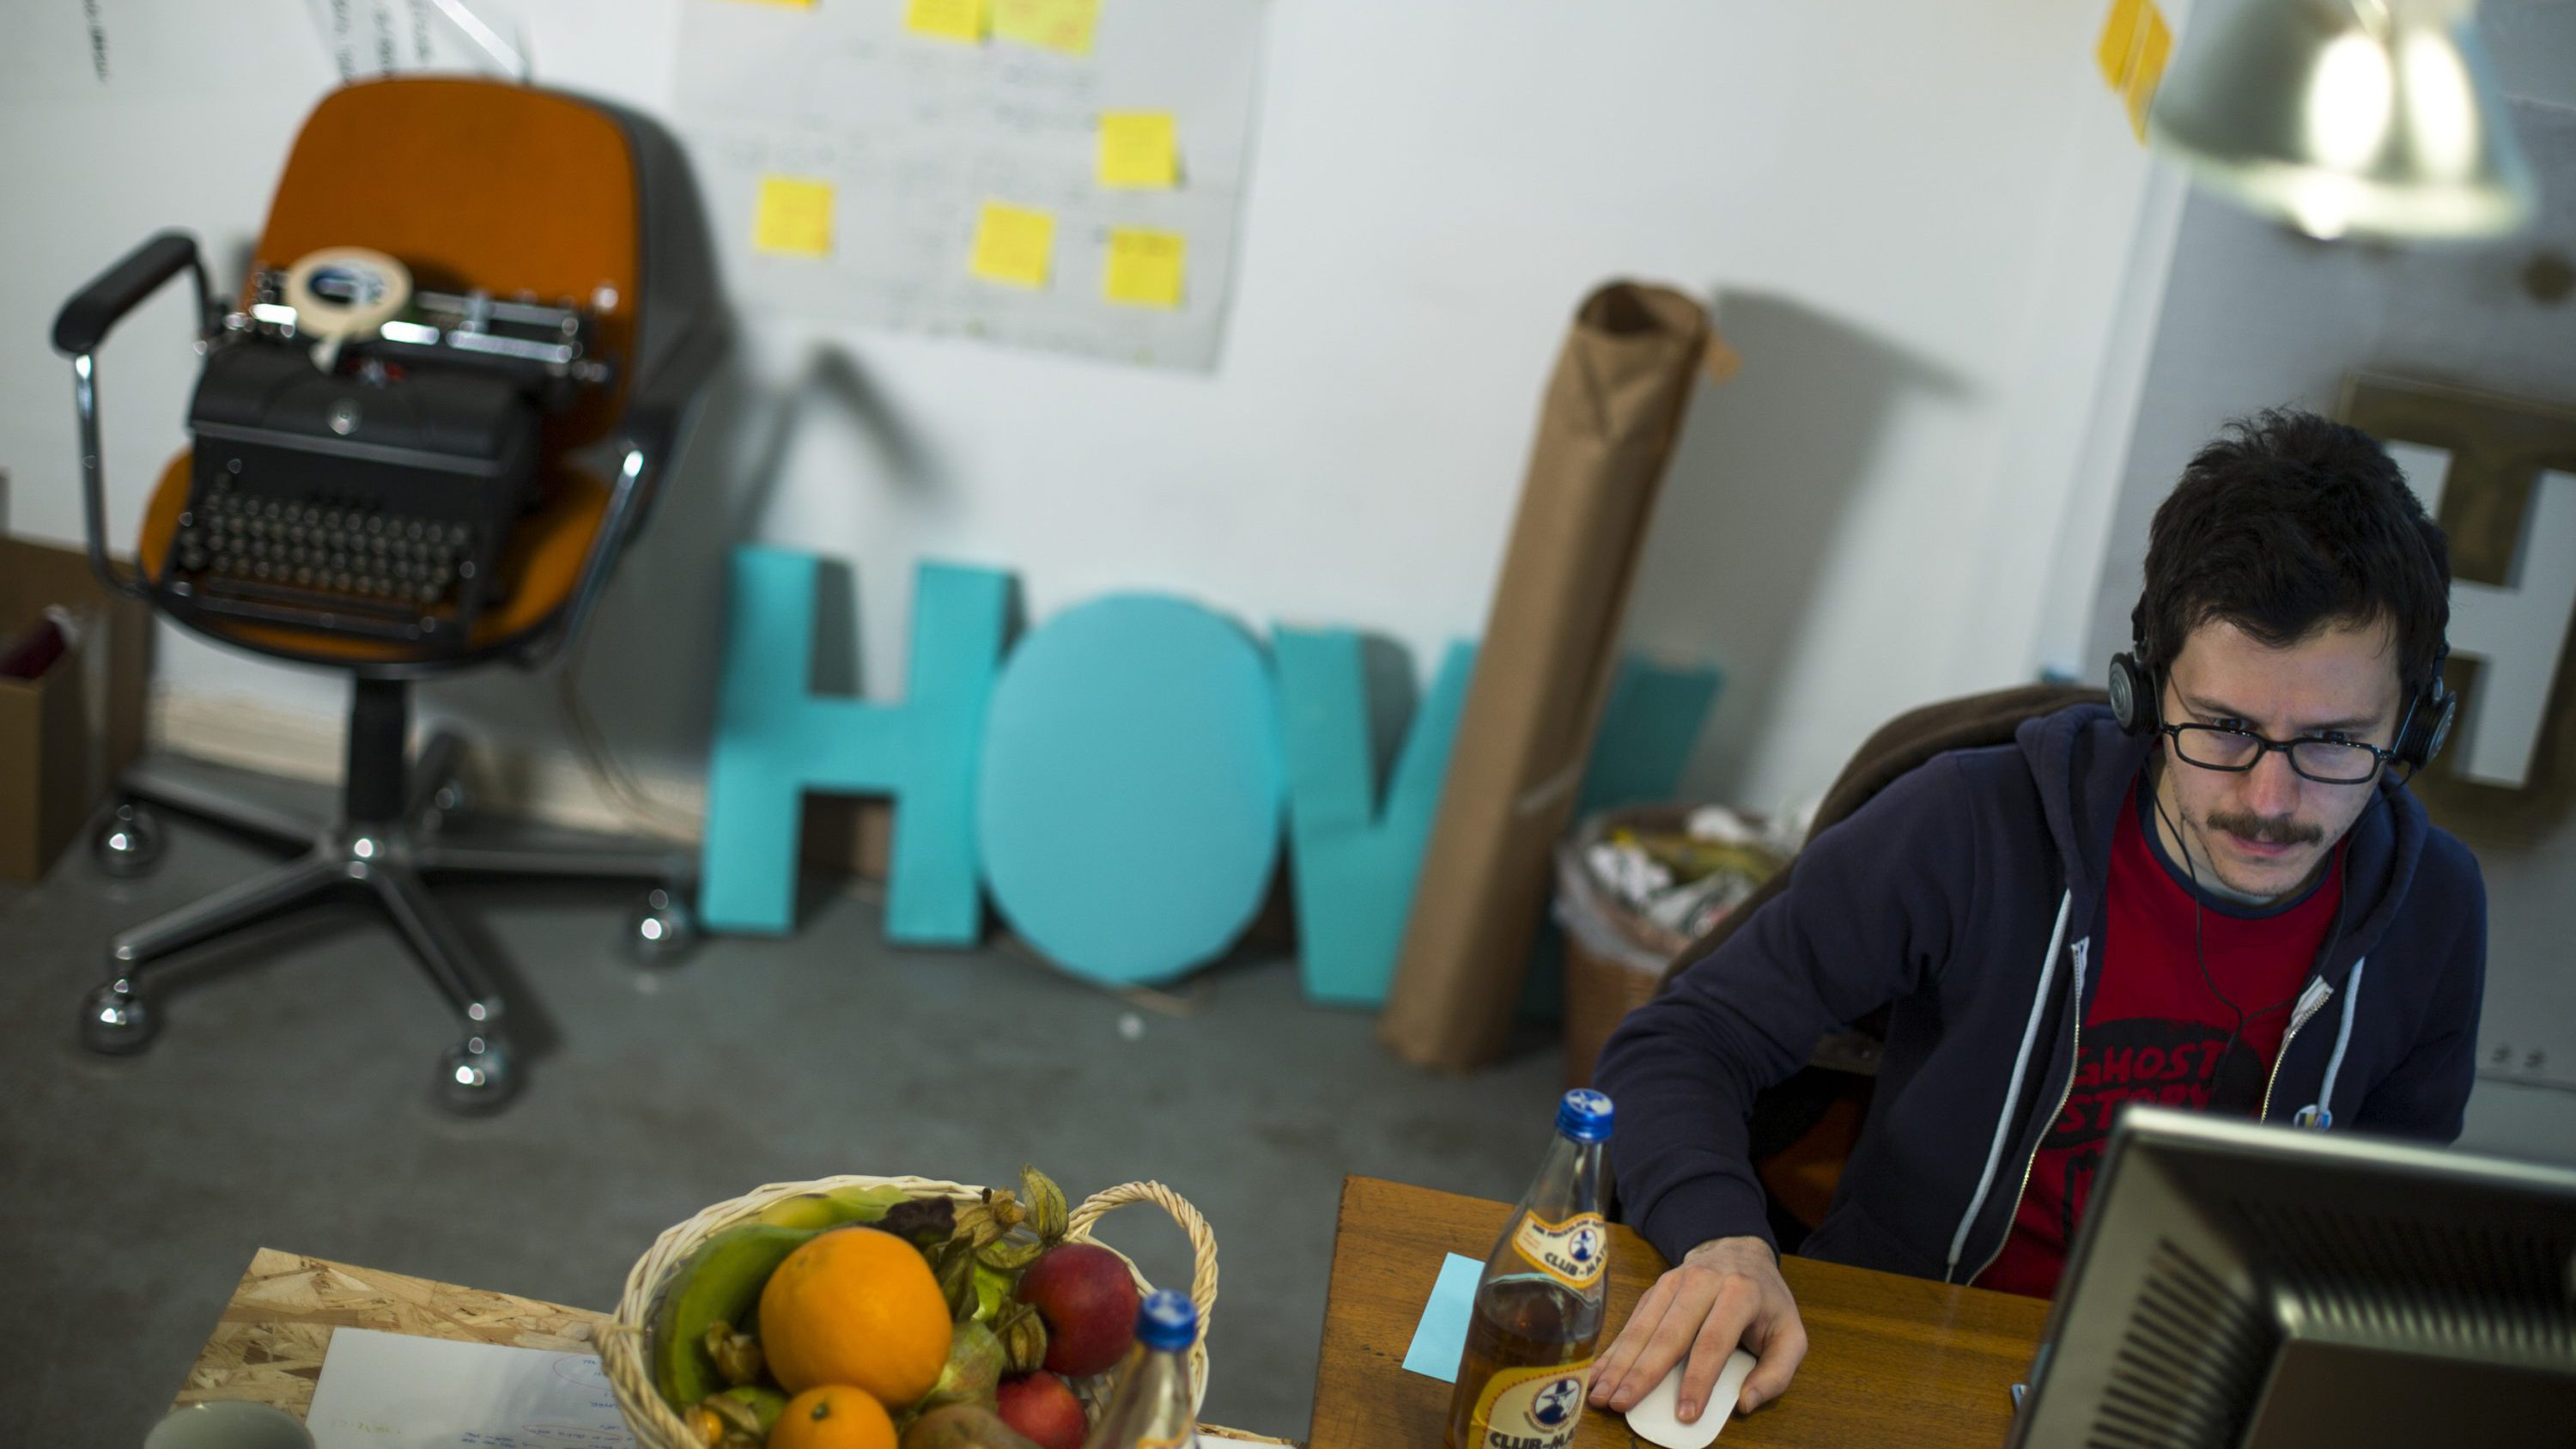 """Alessandro Contini of Italy works in the office of the HowDo, a """"how-to-do-it-yourself"""" app,start-up company at the Wostel co-working space in Berlin March 18, 2013. Europe must urgently tackle youth unemployment, the French, German and Italian governments said May 28, 2013, urging action to rescue an entire generation who fear they will not find jobs. Some 7.5 million Europeans aged 15-24 are neither in employment nor in education or training, according to EU data. Youth unemployment in the EU stood at 23.6 percent in January, more than twice as high as the adult rate."""